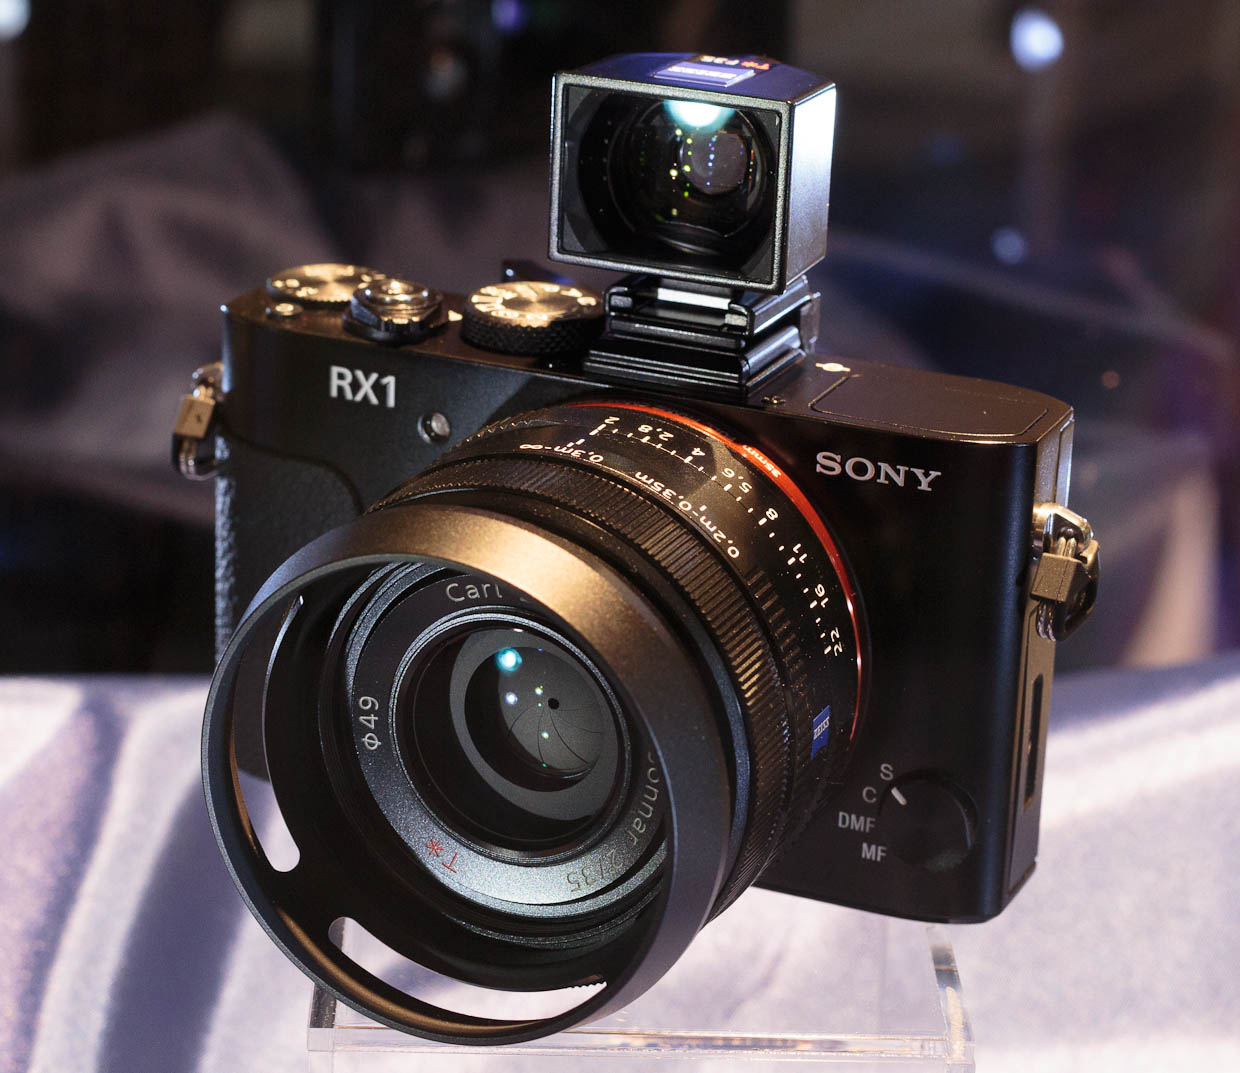 The Sony RX1 comes with an optional viewfinder, shown here perched atop the camera body in the flash hot shoe. The camera comes with a Carl Zeiss lens, too.